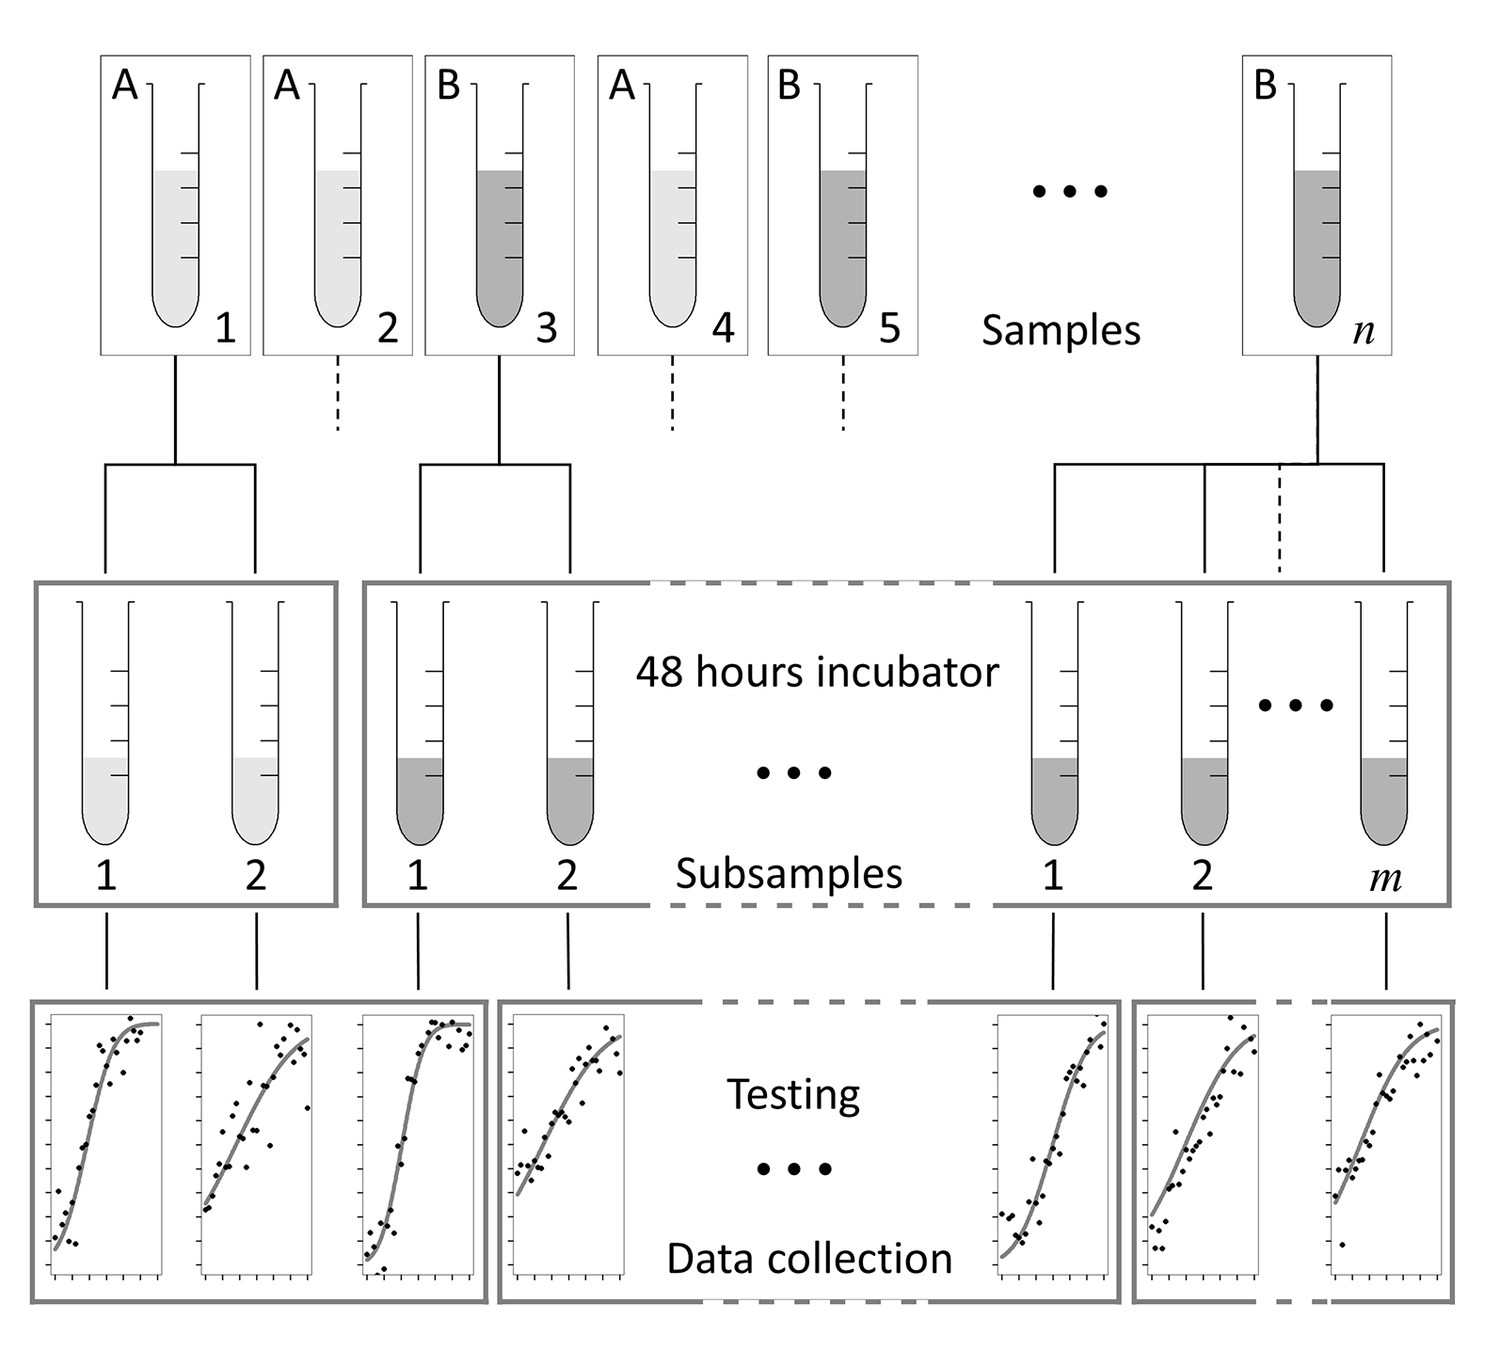 hight resolution of design options for a putative laboratory study testing n samples of experimental material